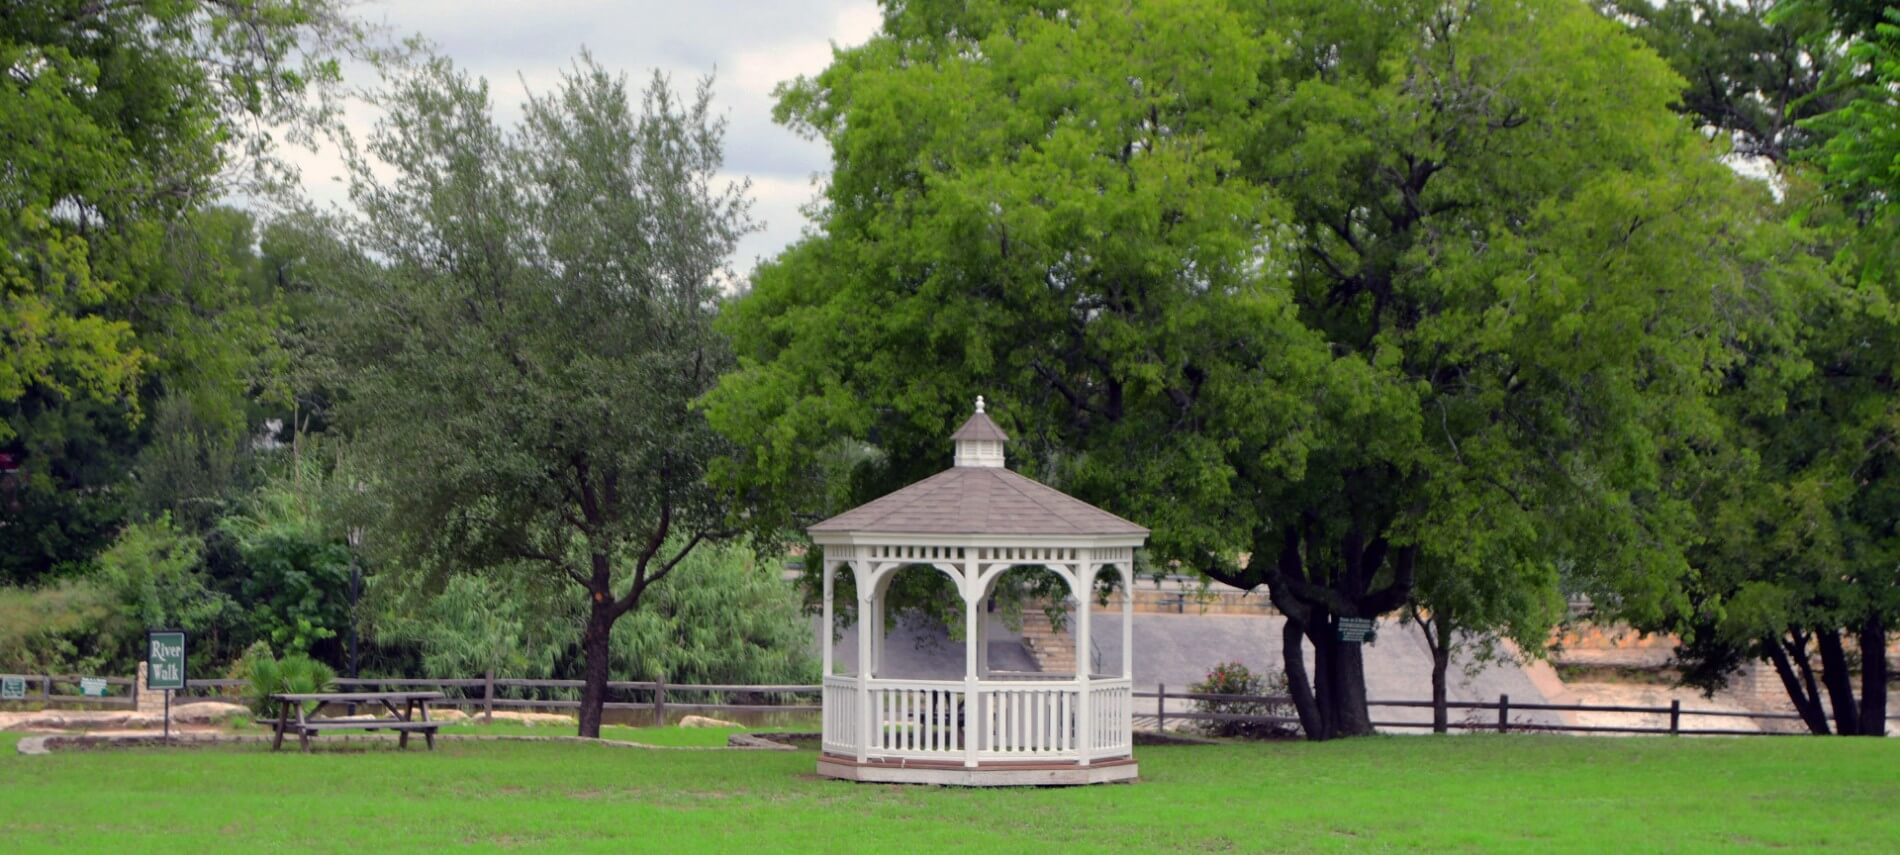 A pretty white gazebo in a green field surrounded by trees.